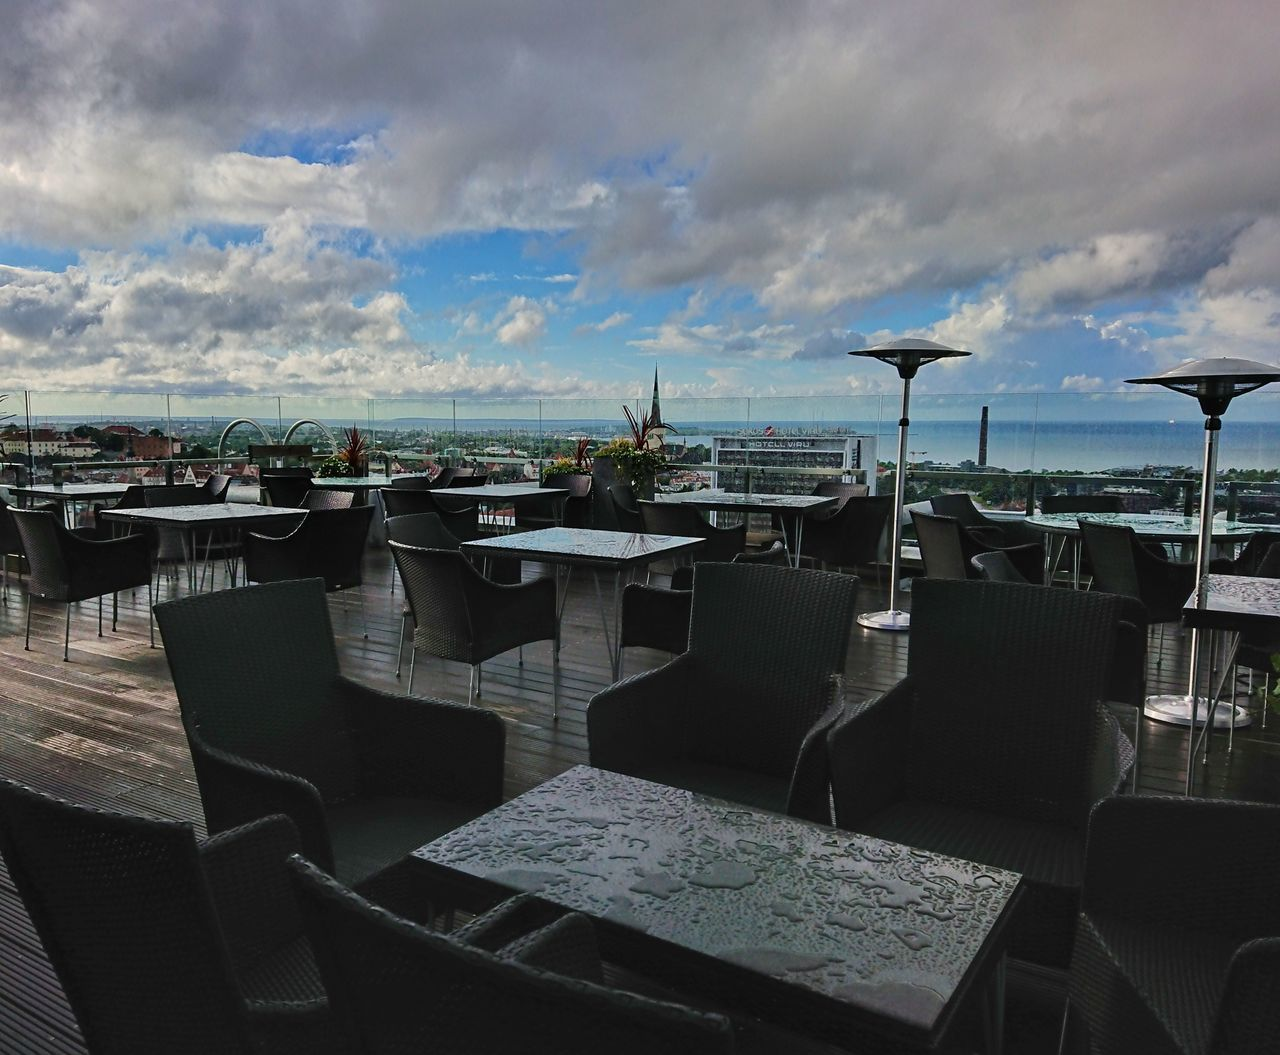 chair, table, sky, outdoor cafe, cloud - sky, empty, restaurant, arrangement, sea, outdoors, place setting, no people, day, nature